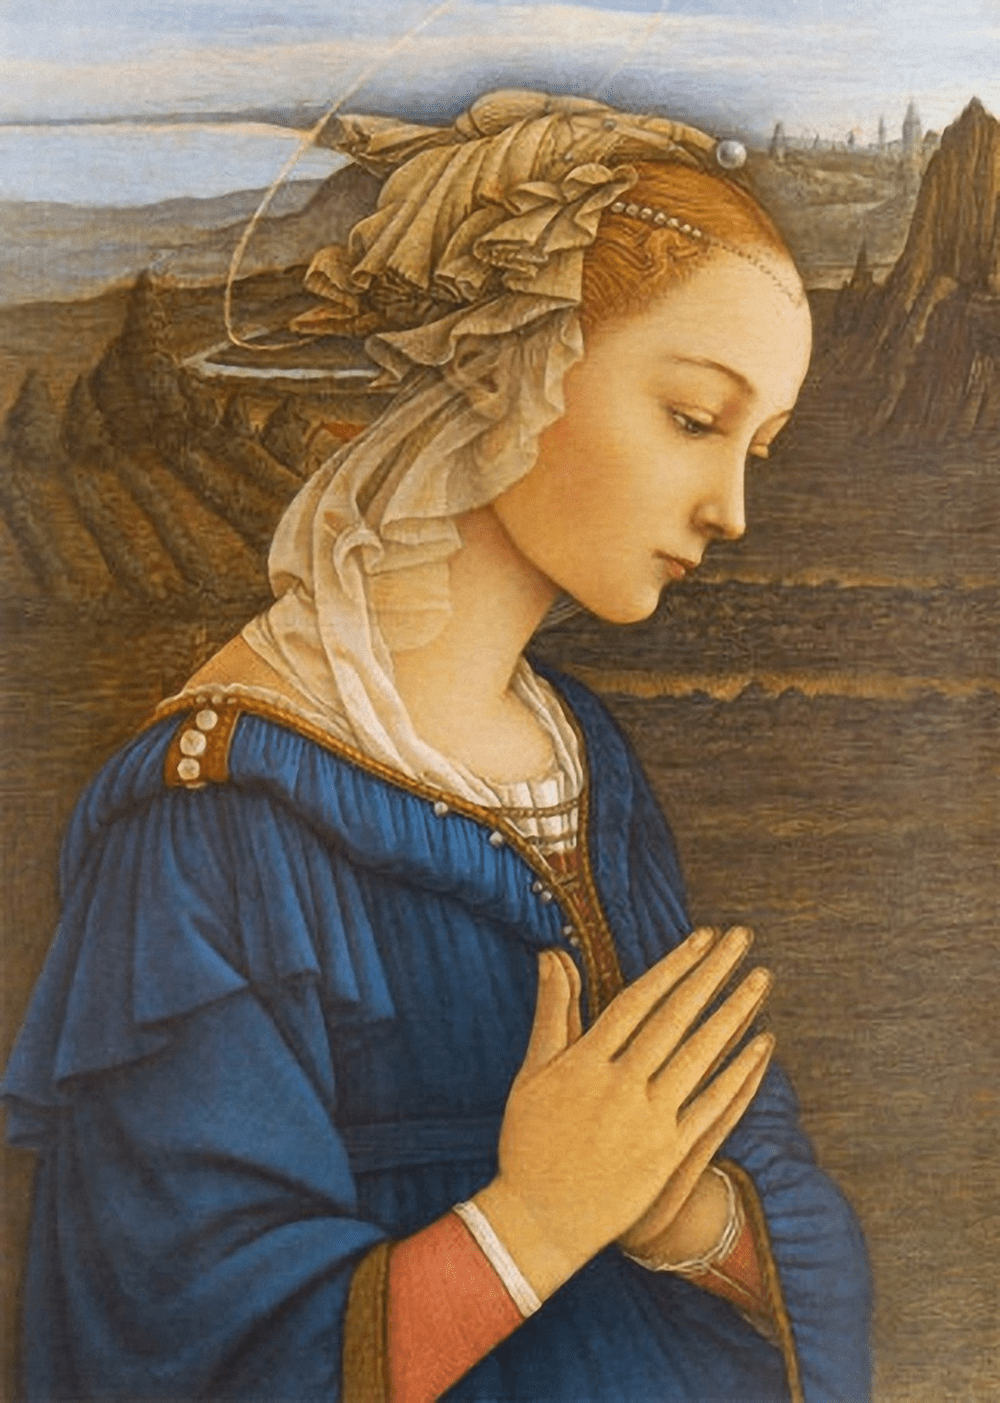 List of Titles of Mary